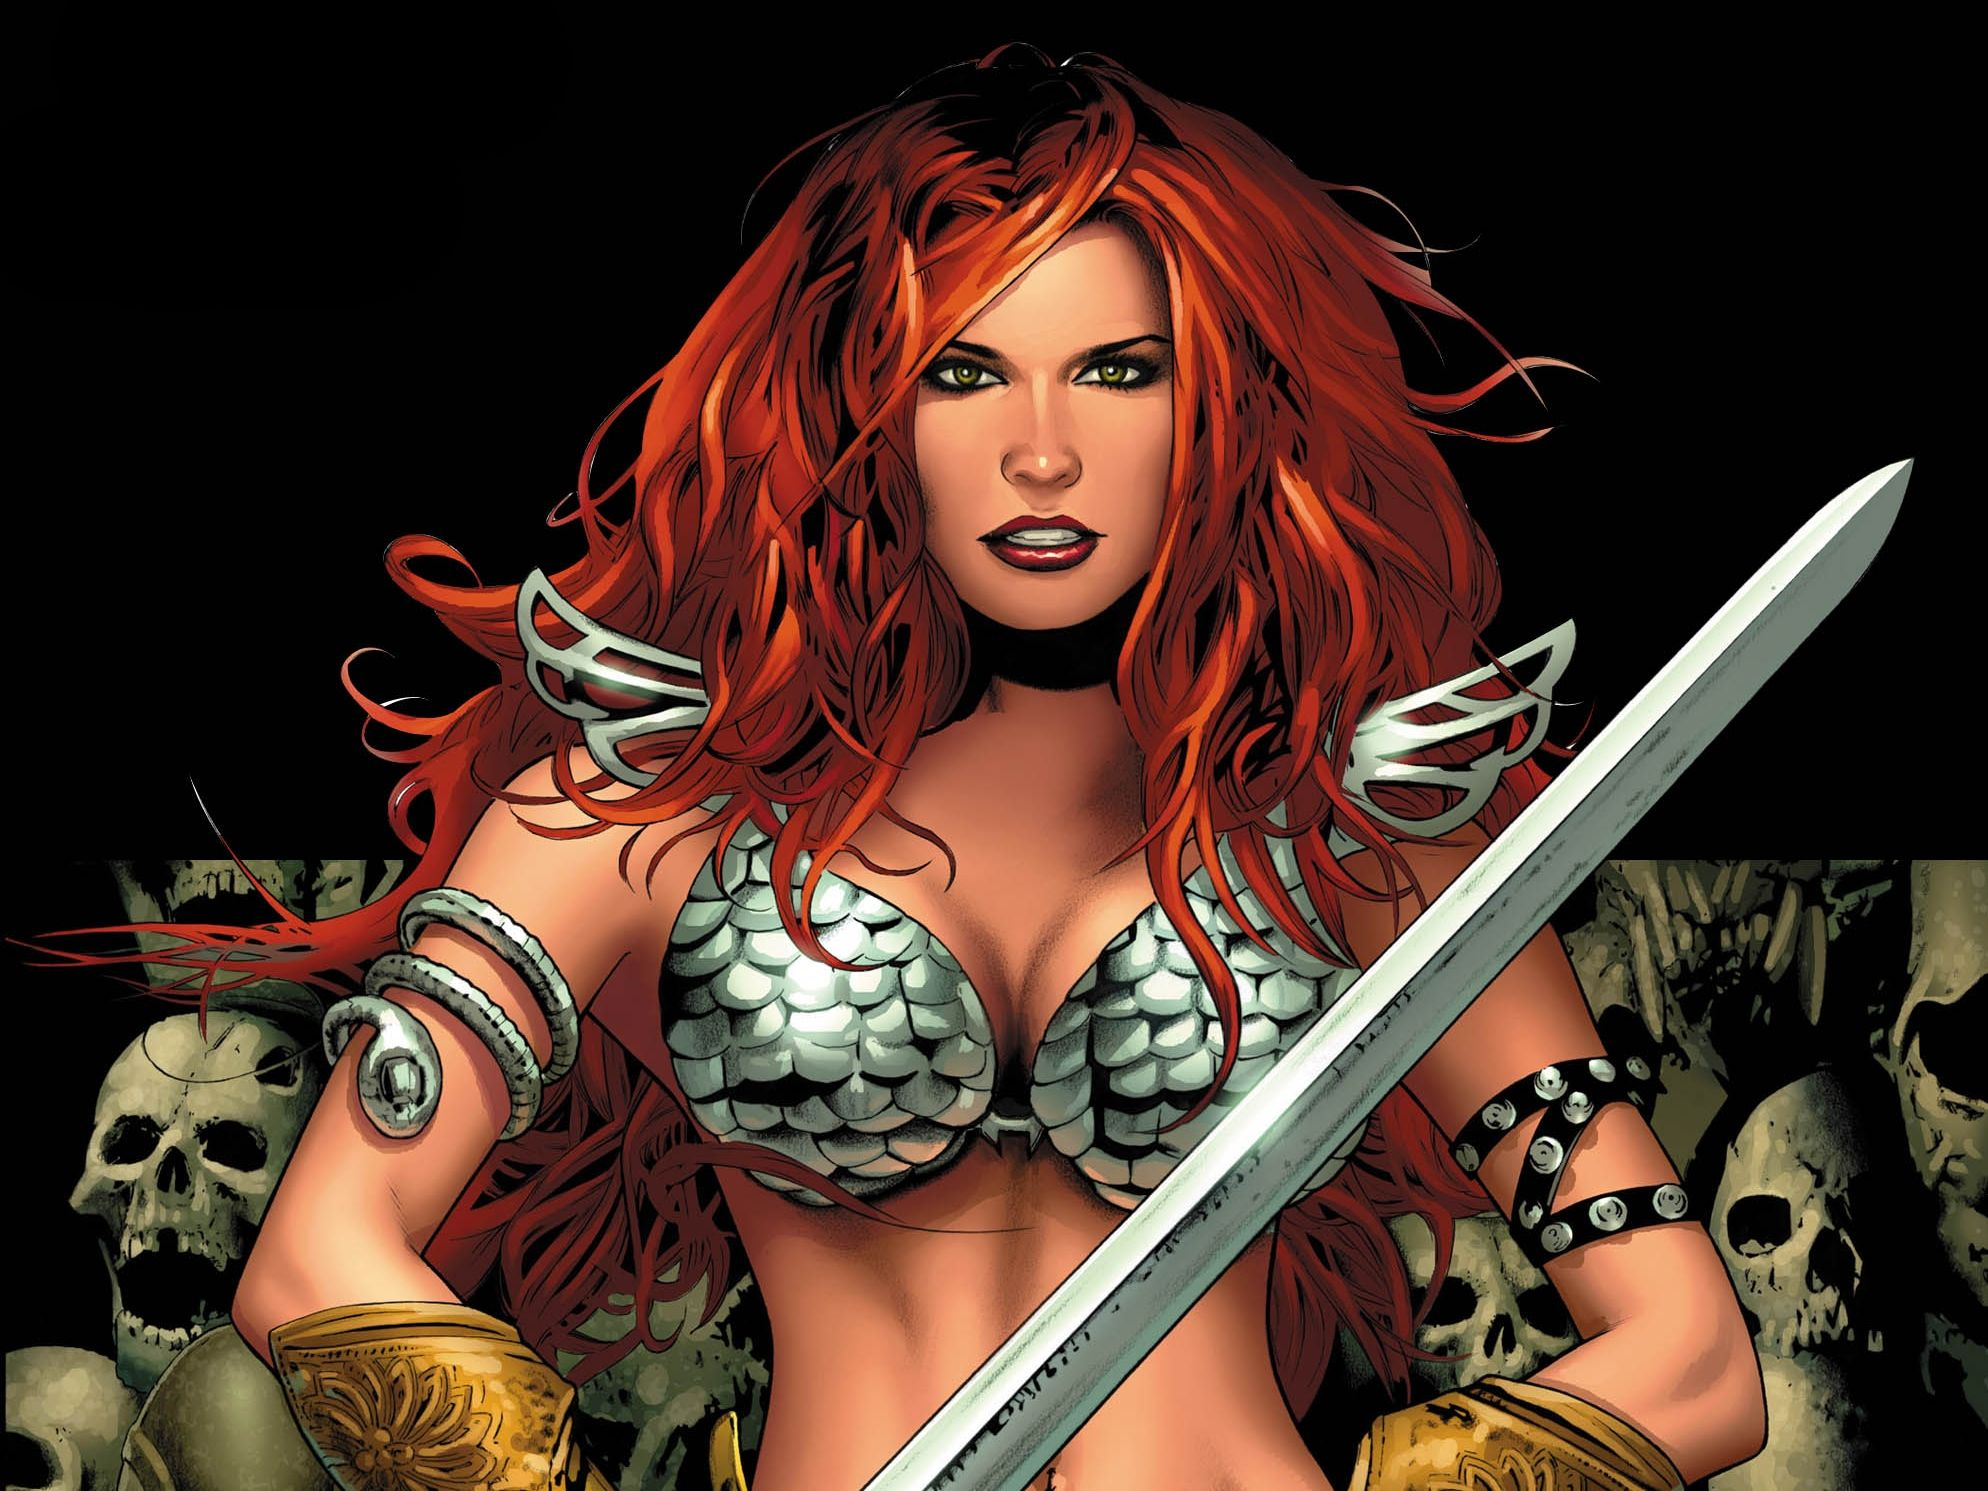 Red Sonja Computer Wallpapers Desktop Backgrounds 1988x1491 Id 446307 Red Sonja Superhero Costumes Female Warrior Woman